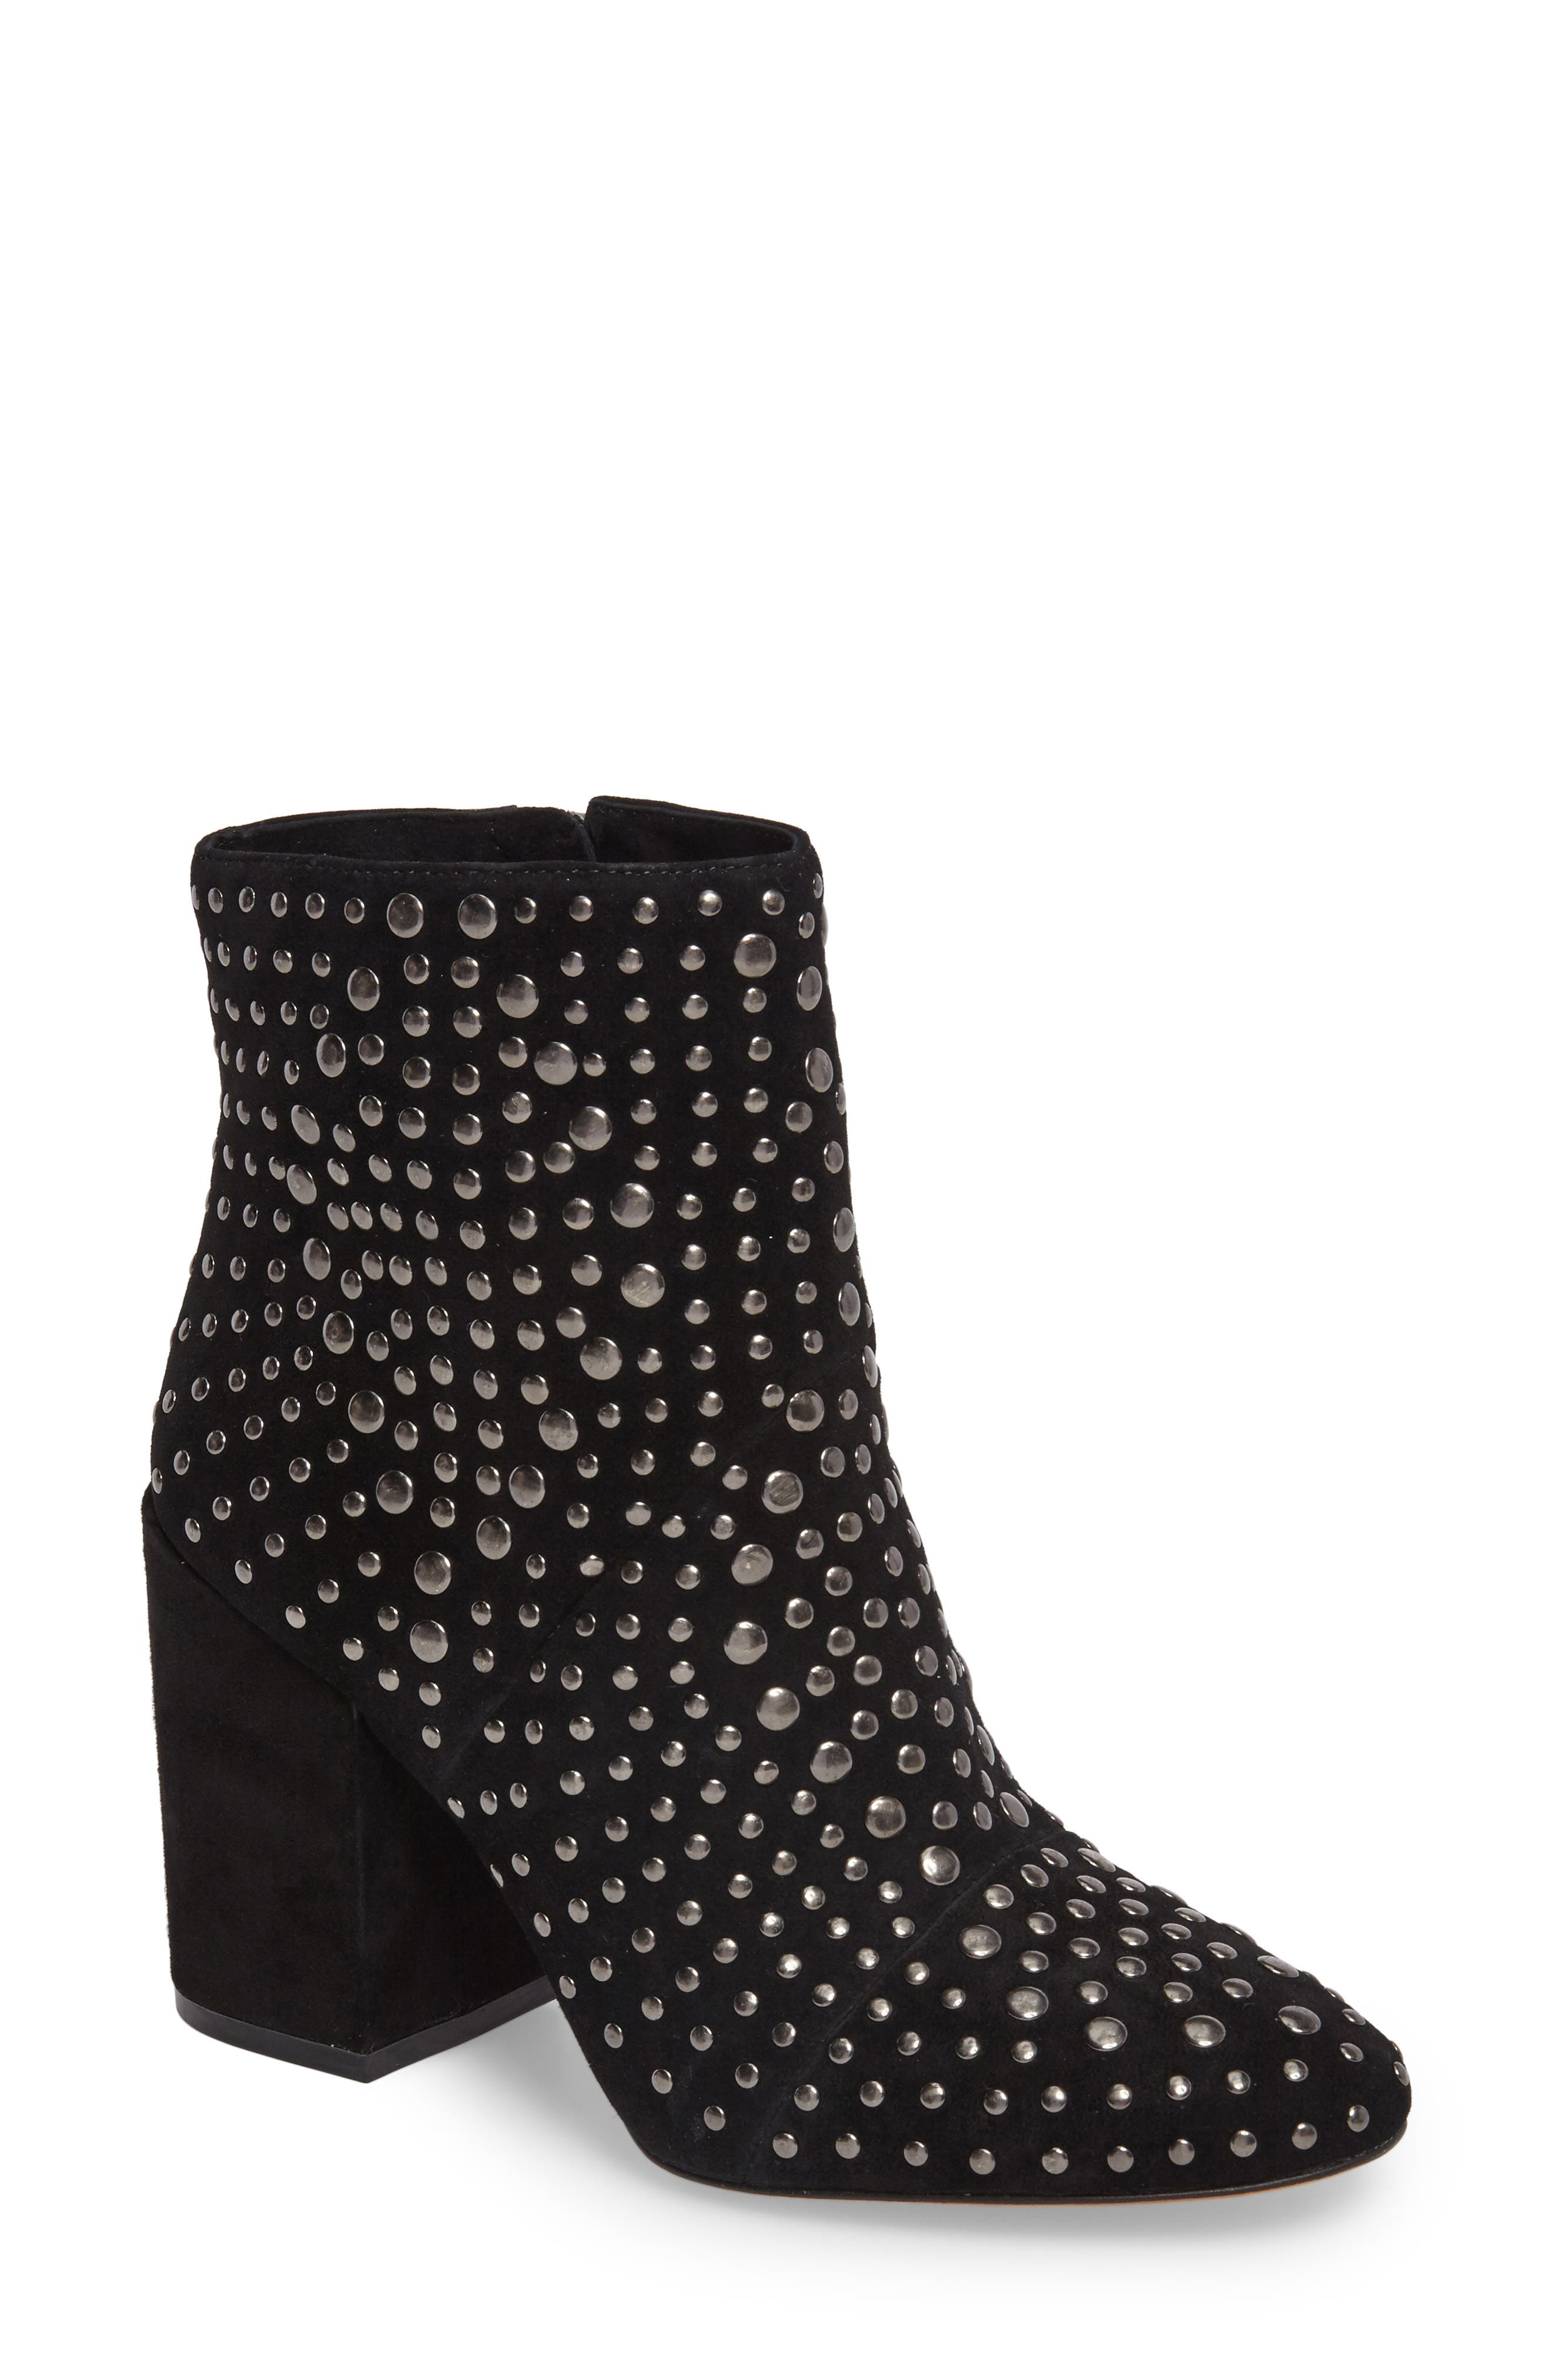 Main Image - Vince Camuto Drista Stud Bootie (Women)